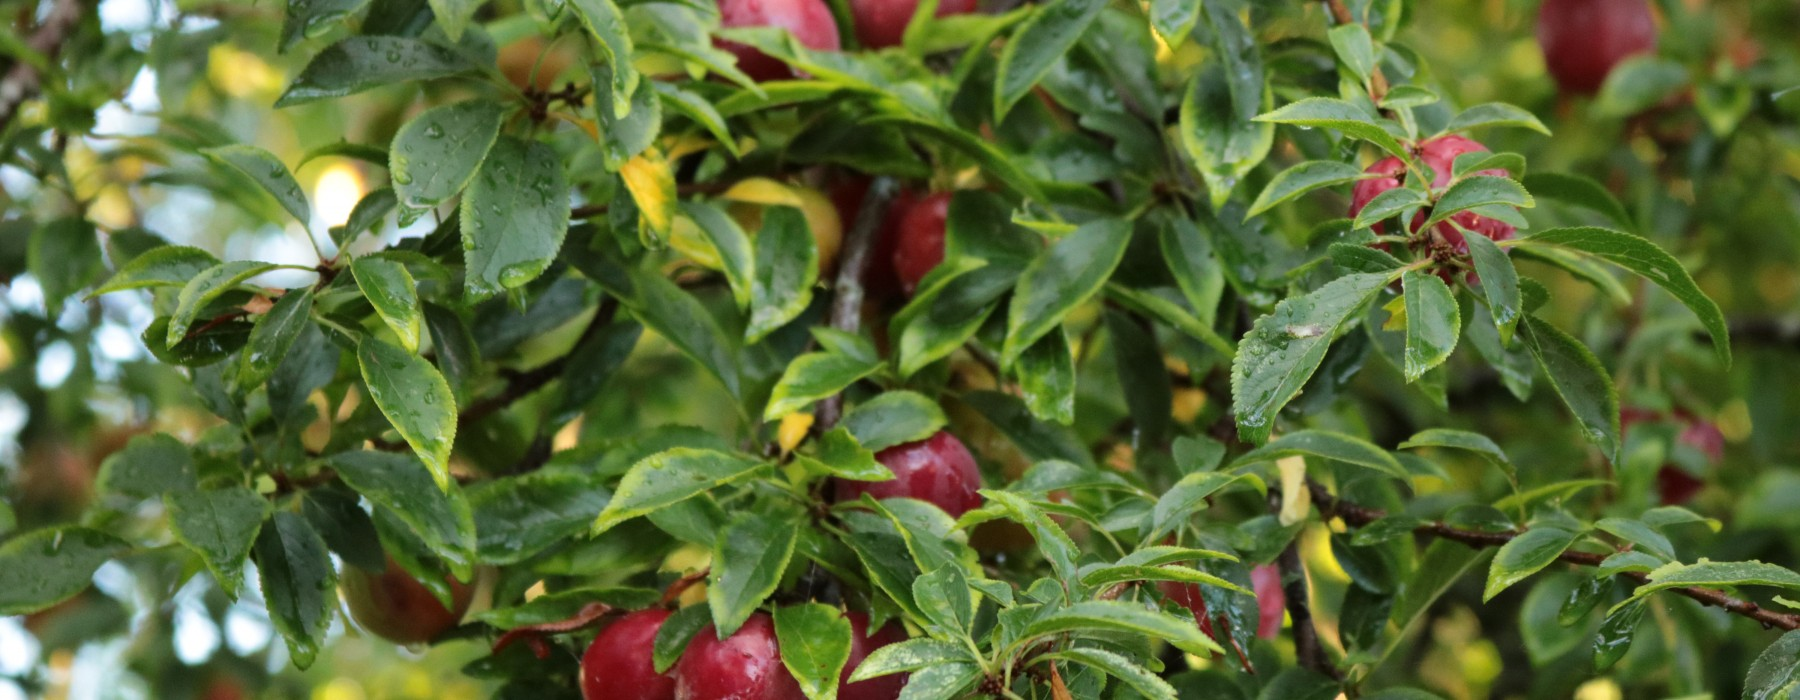 Foraging for Cherry Plums